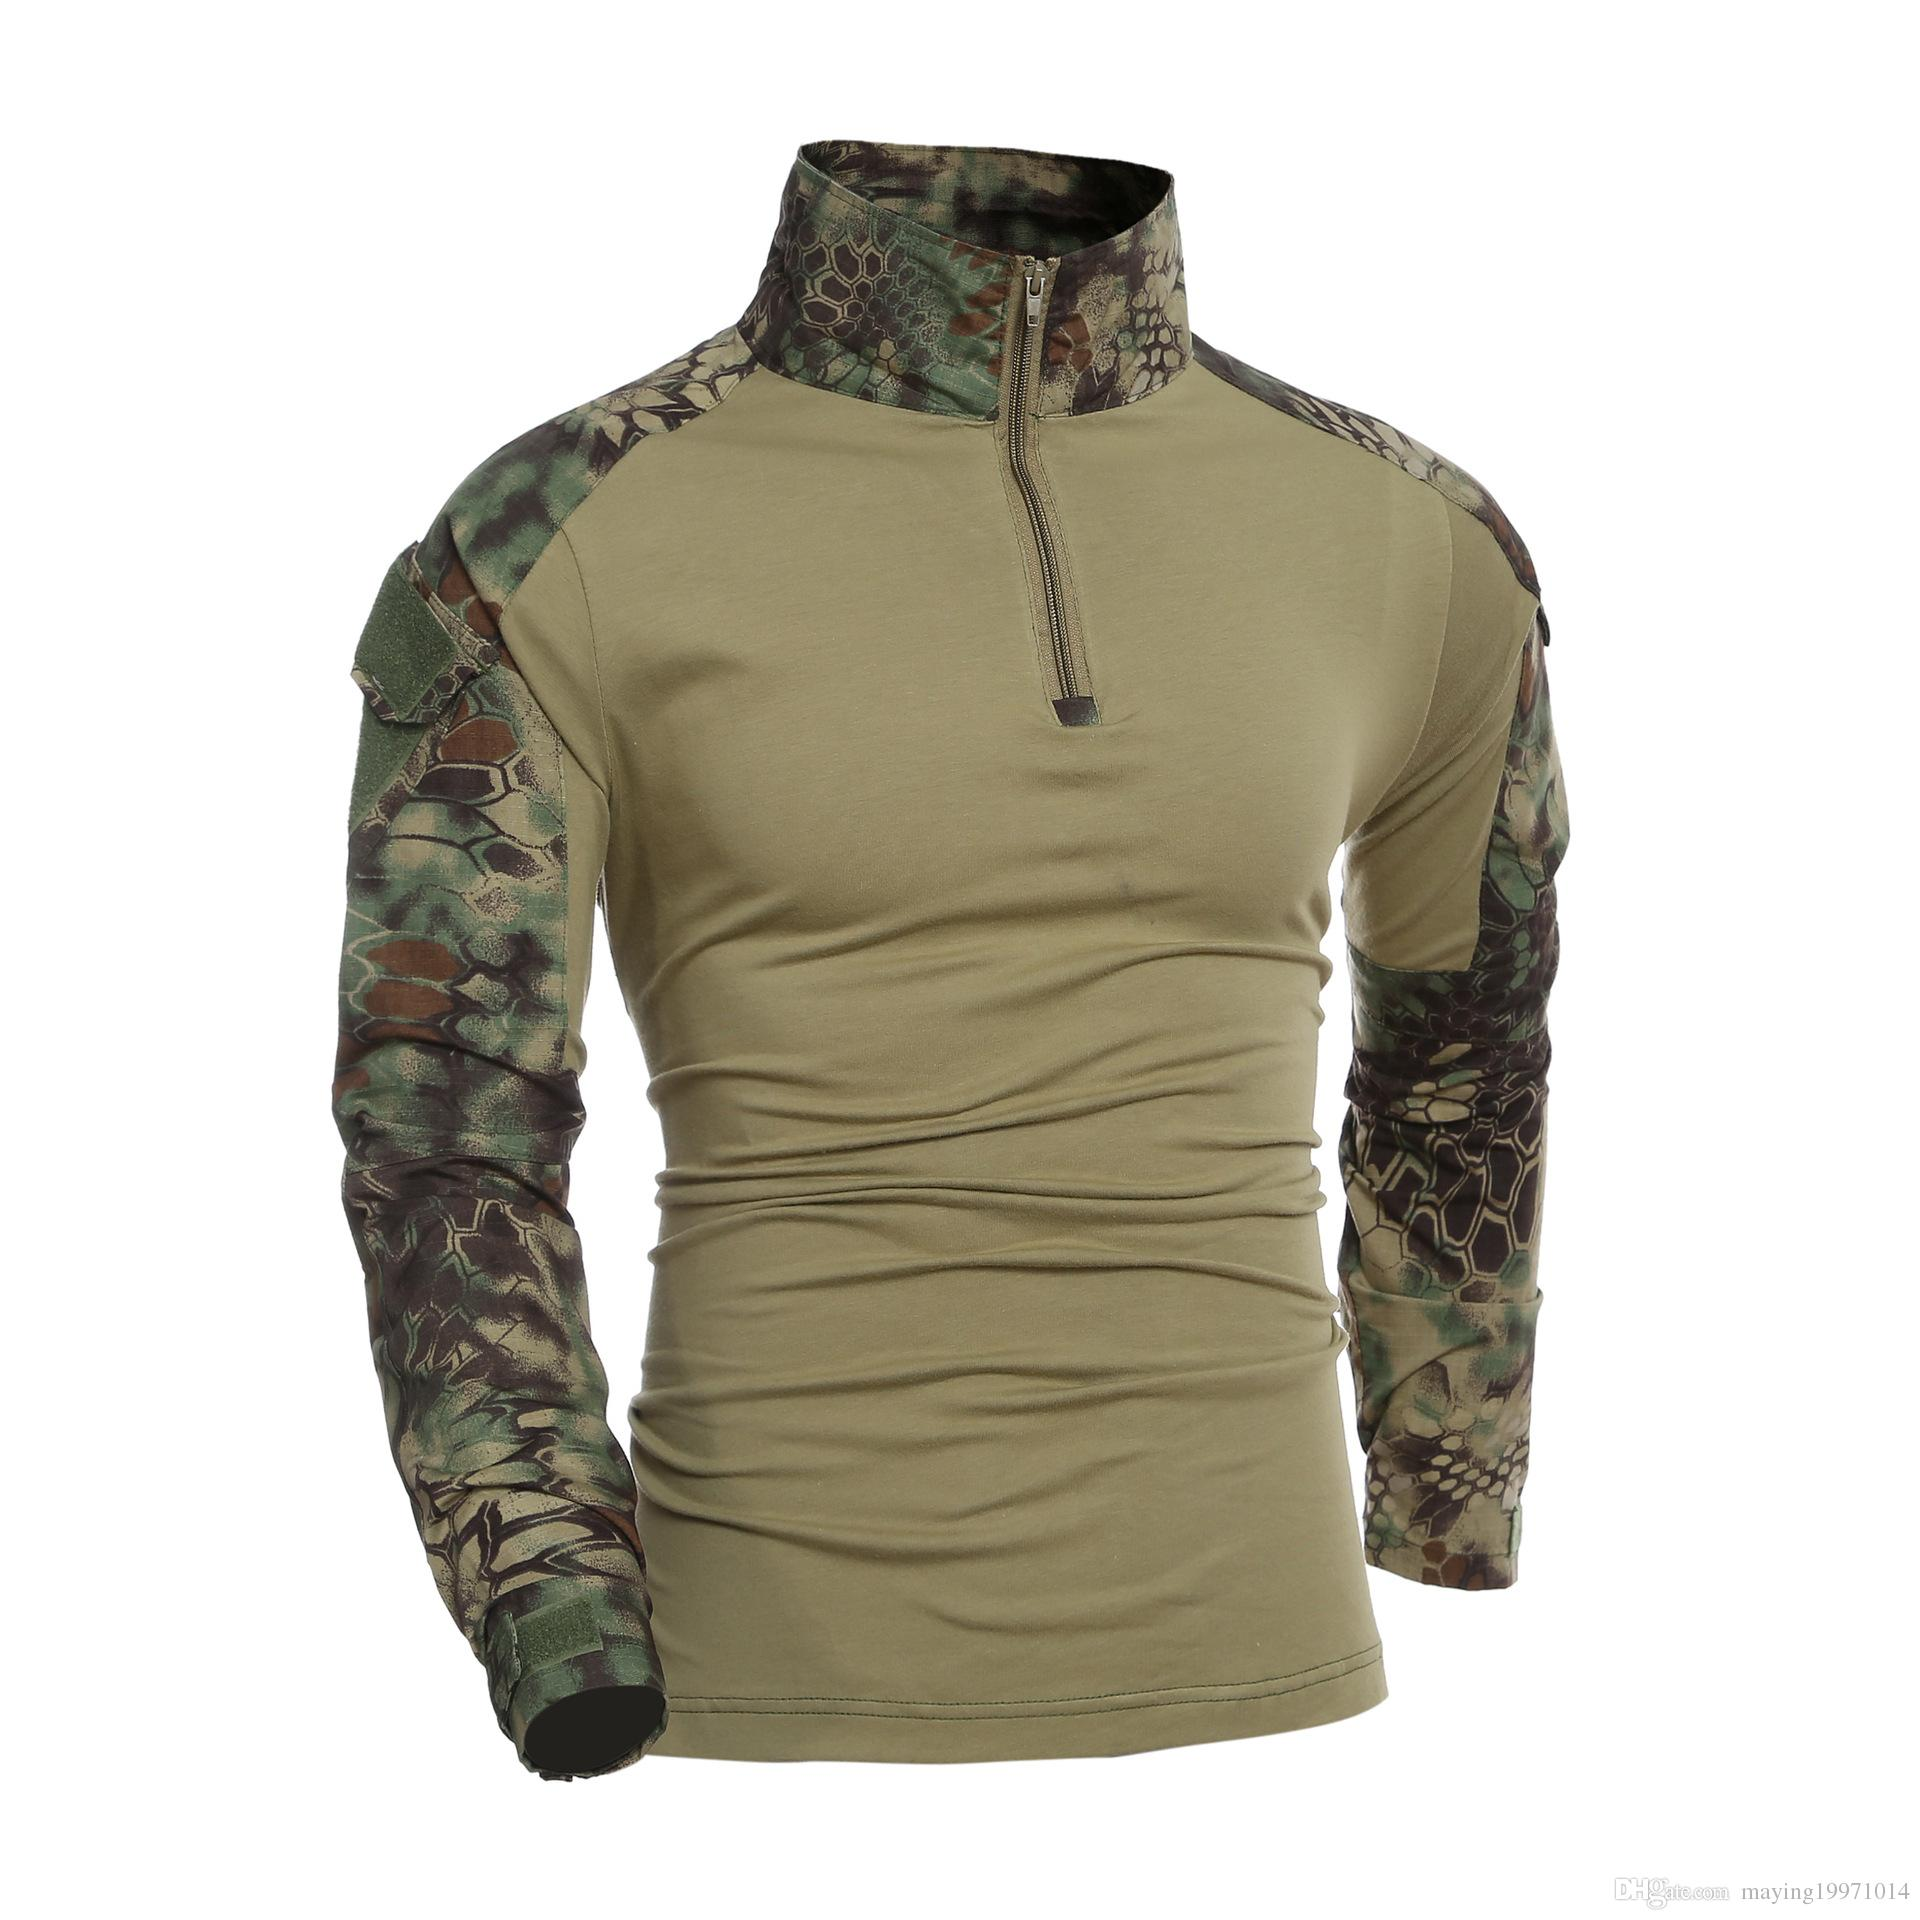 Camouflage T-Shirt Military Army Combat T Shirt Men Long Sleeve US RU Soldiers Tactical T Shirt Multicam Camo Tops